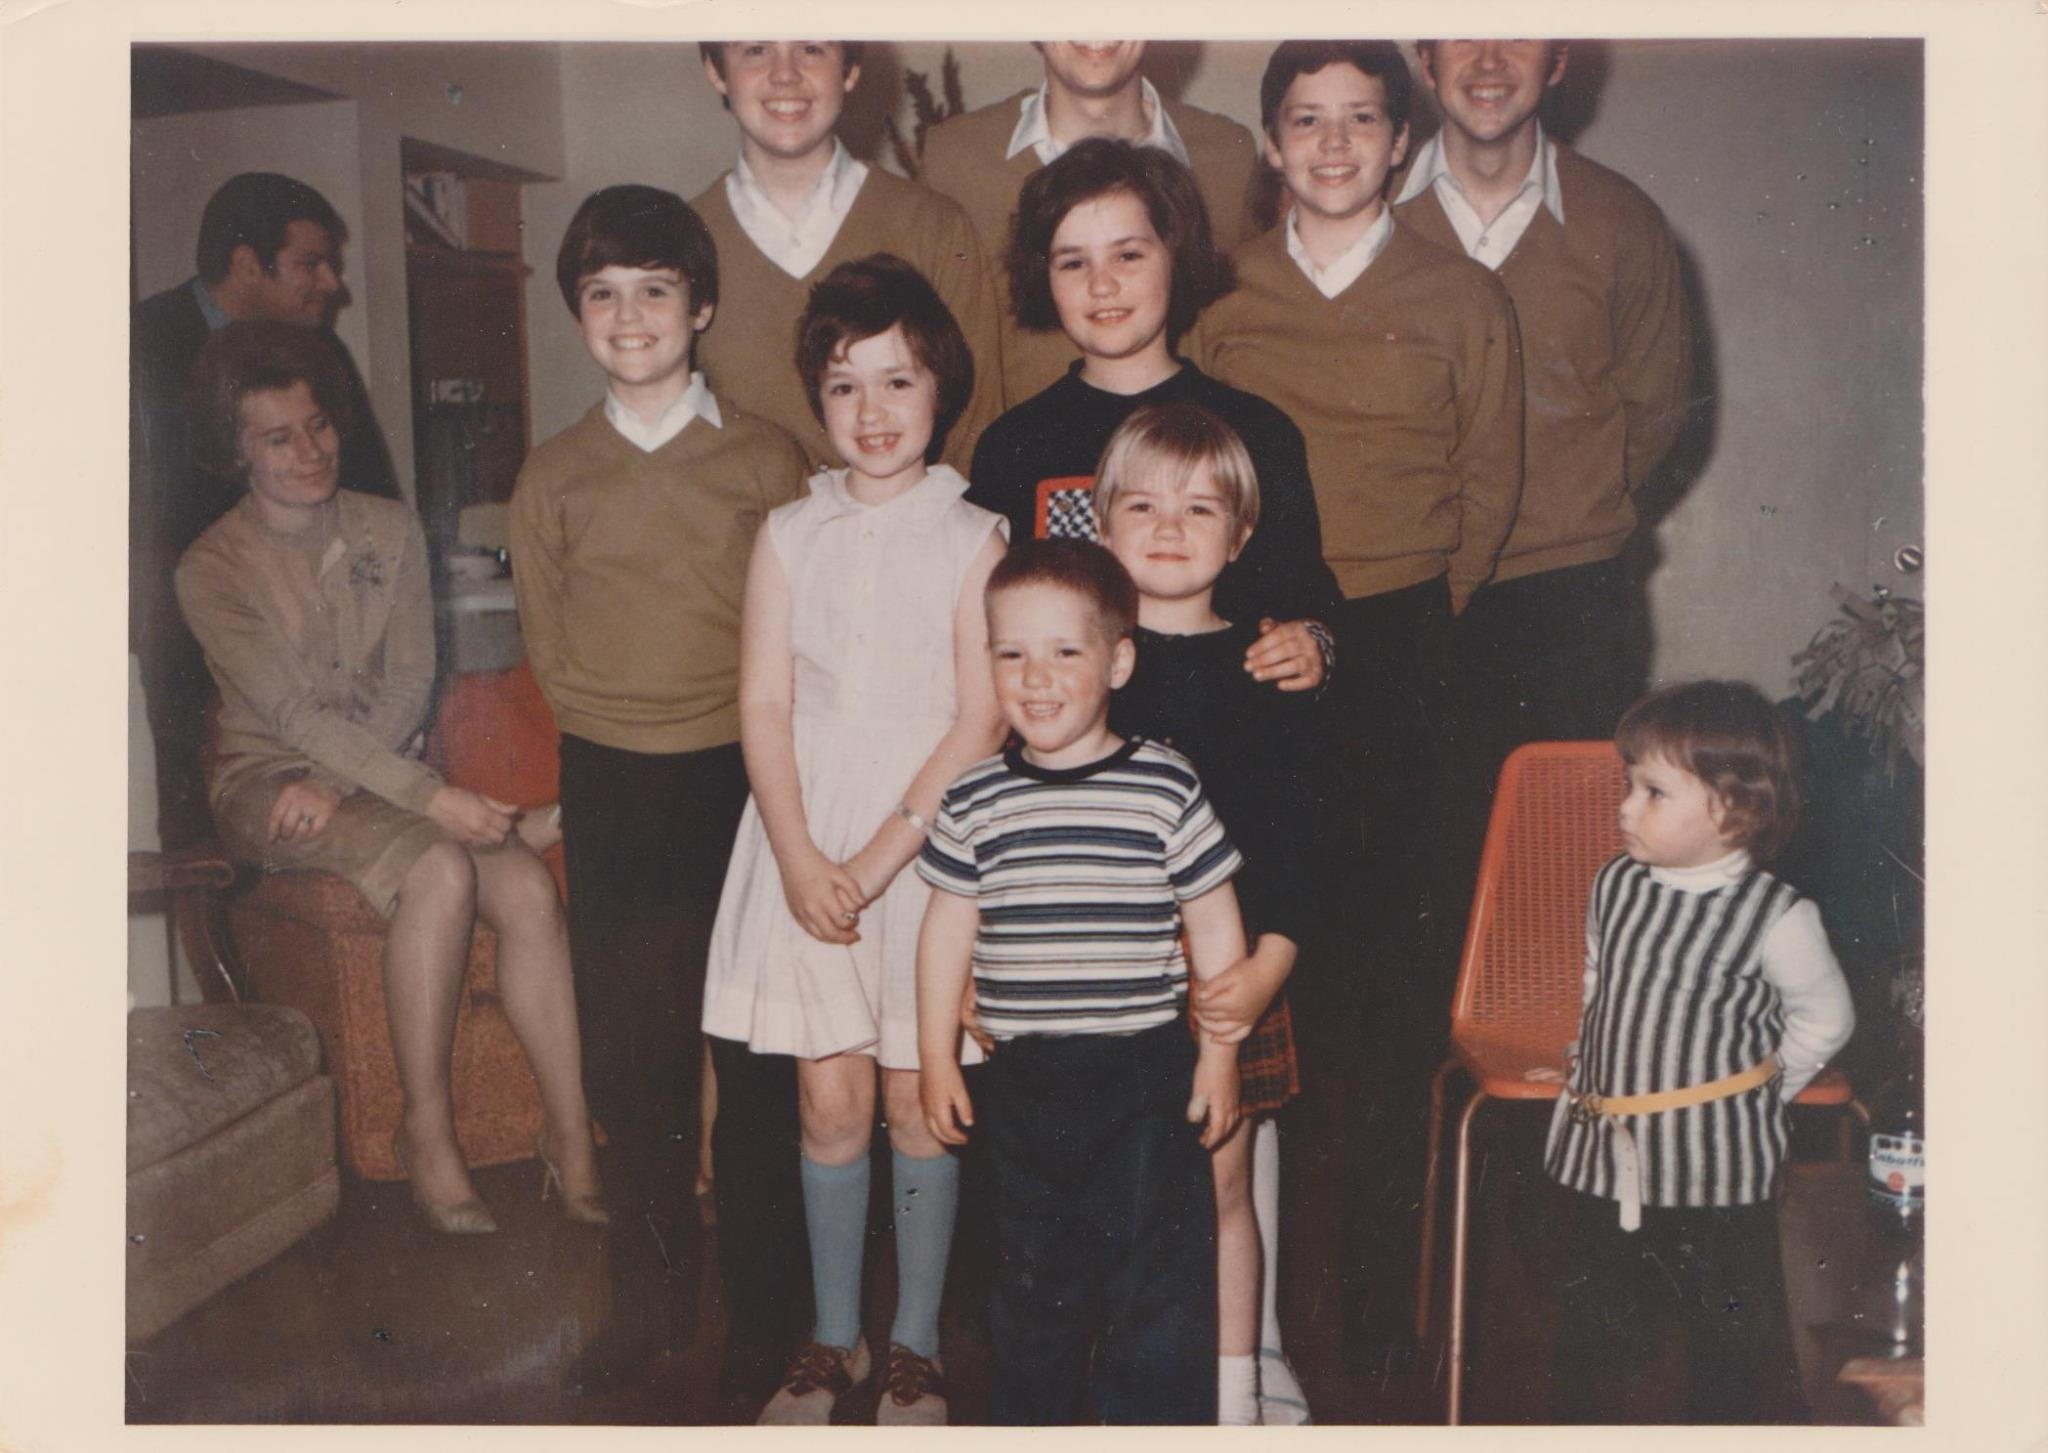 RT @NatYwheeler: @donnyosmond you & family were at Tara MacFarlane's family home for dinner in Winnipeg MB (Canada), Circa 1968! http://t.c…